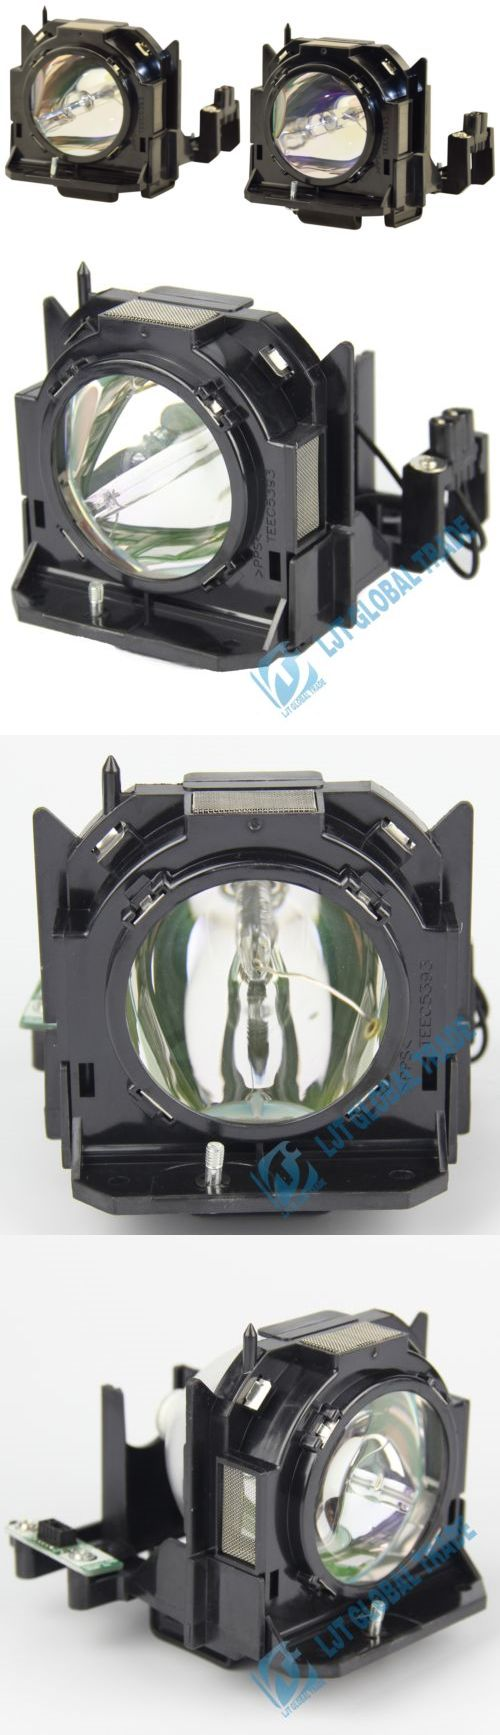 Star projector lamp ebay - Projector Lamps And Components Dual Twin Pack Panasonic Replacement Projector Lamp For Et